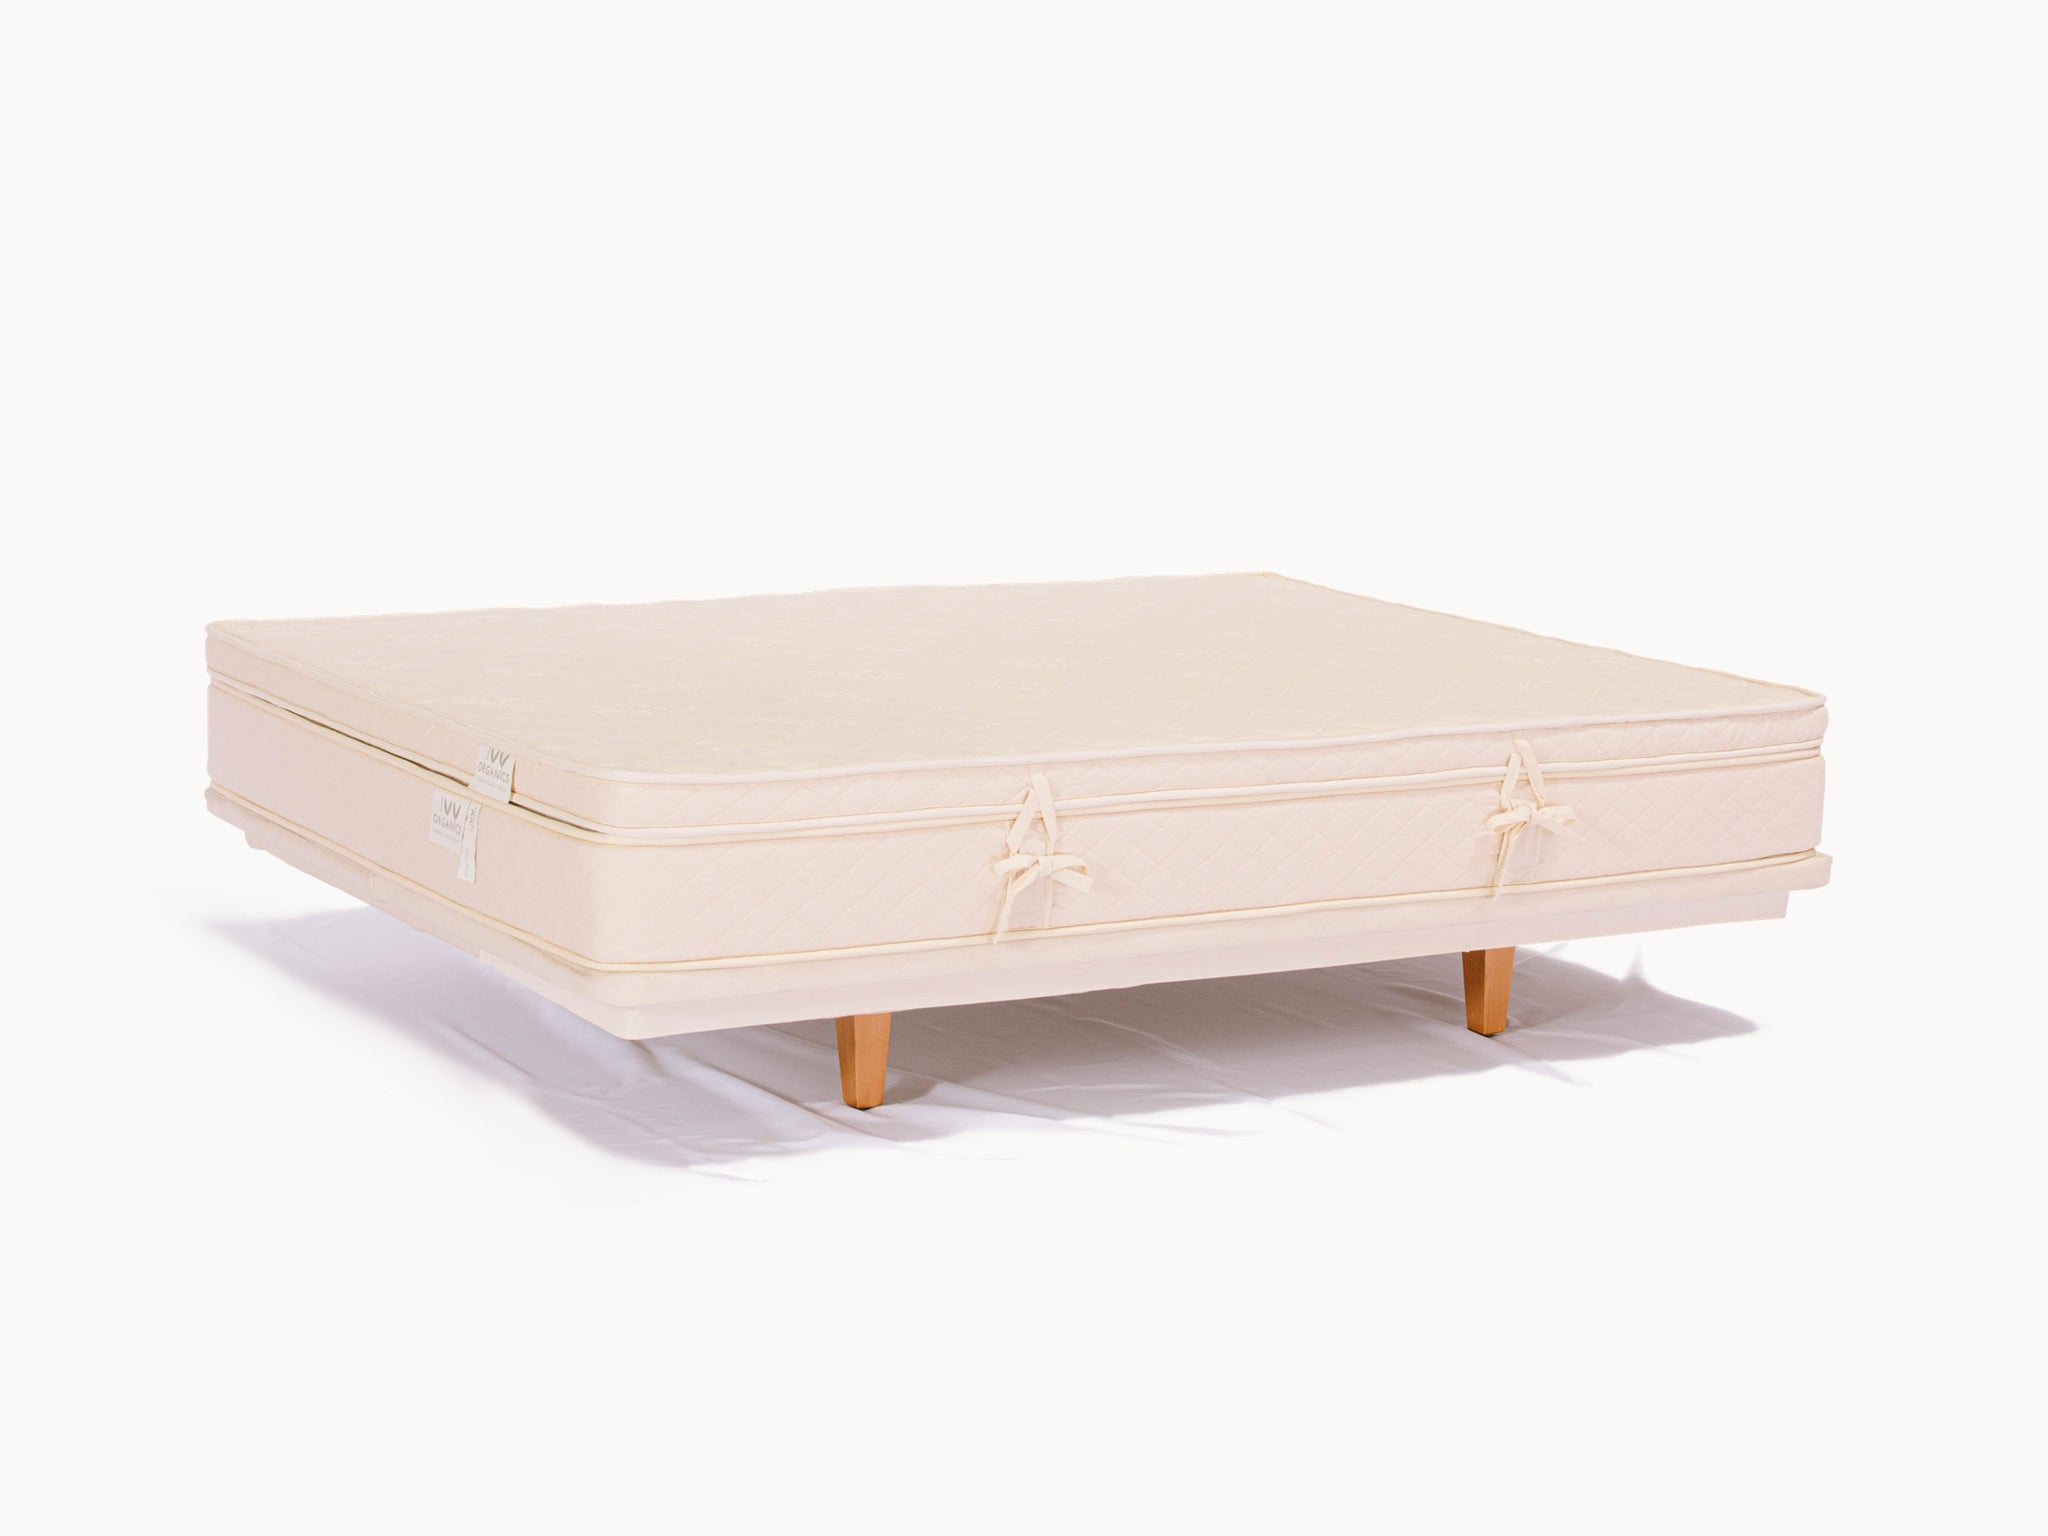 Plush Luxury Organic Mattress Topper - PJs Sleep Company | Luxury Organic Mattresses & Bedding